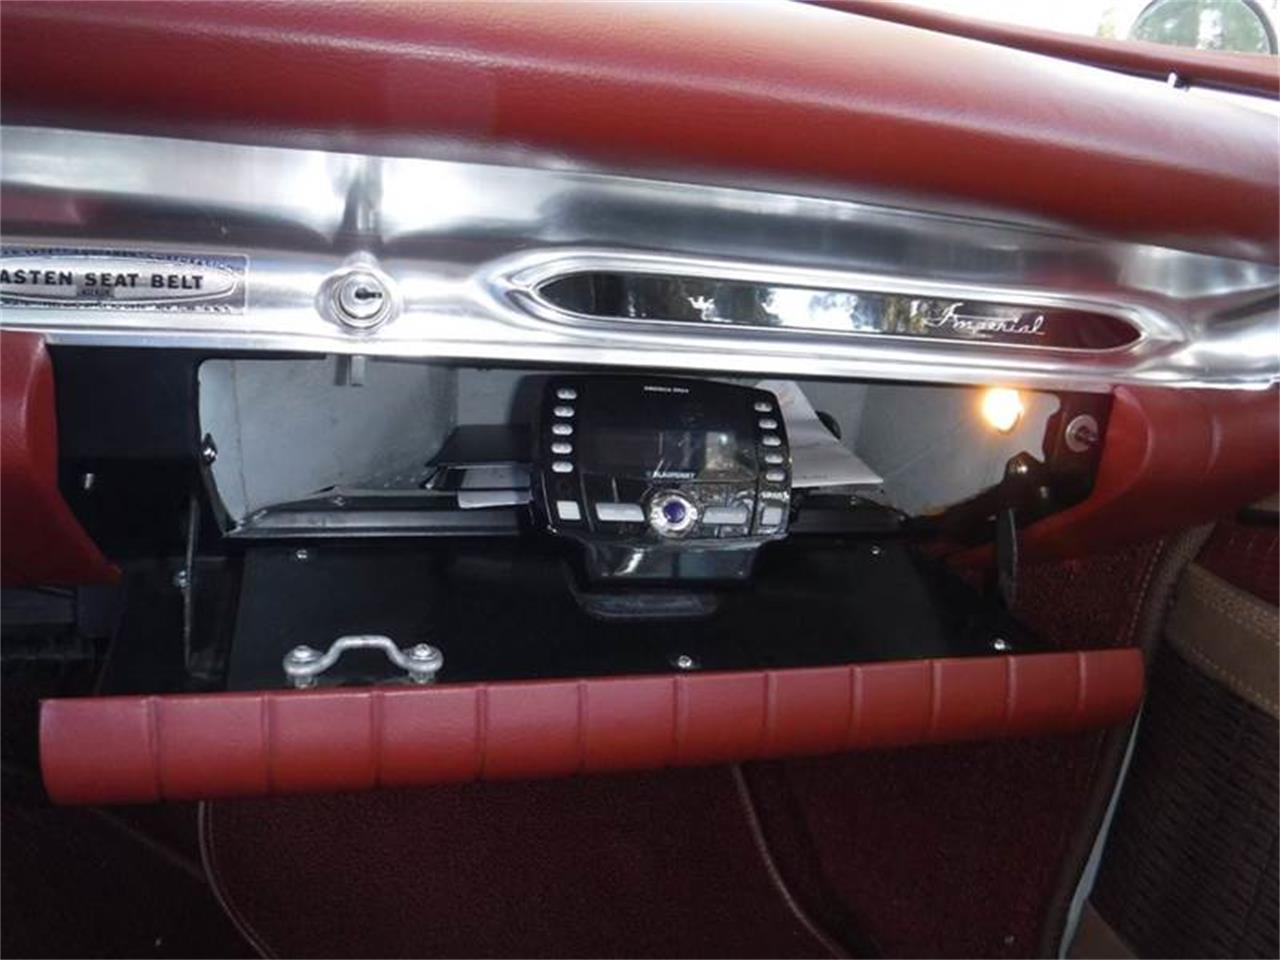 Large Picture of '61 Chrysler Imperial located in Thousand Oaks California - $59,995.00 Offered by Allen Motors, Inc. - MCTX